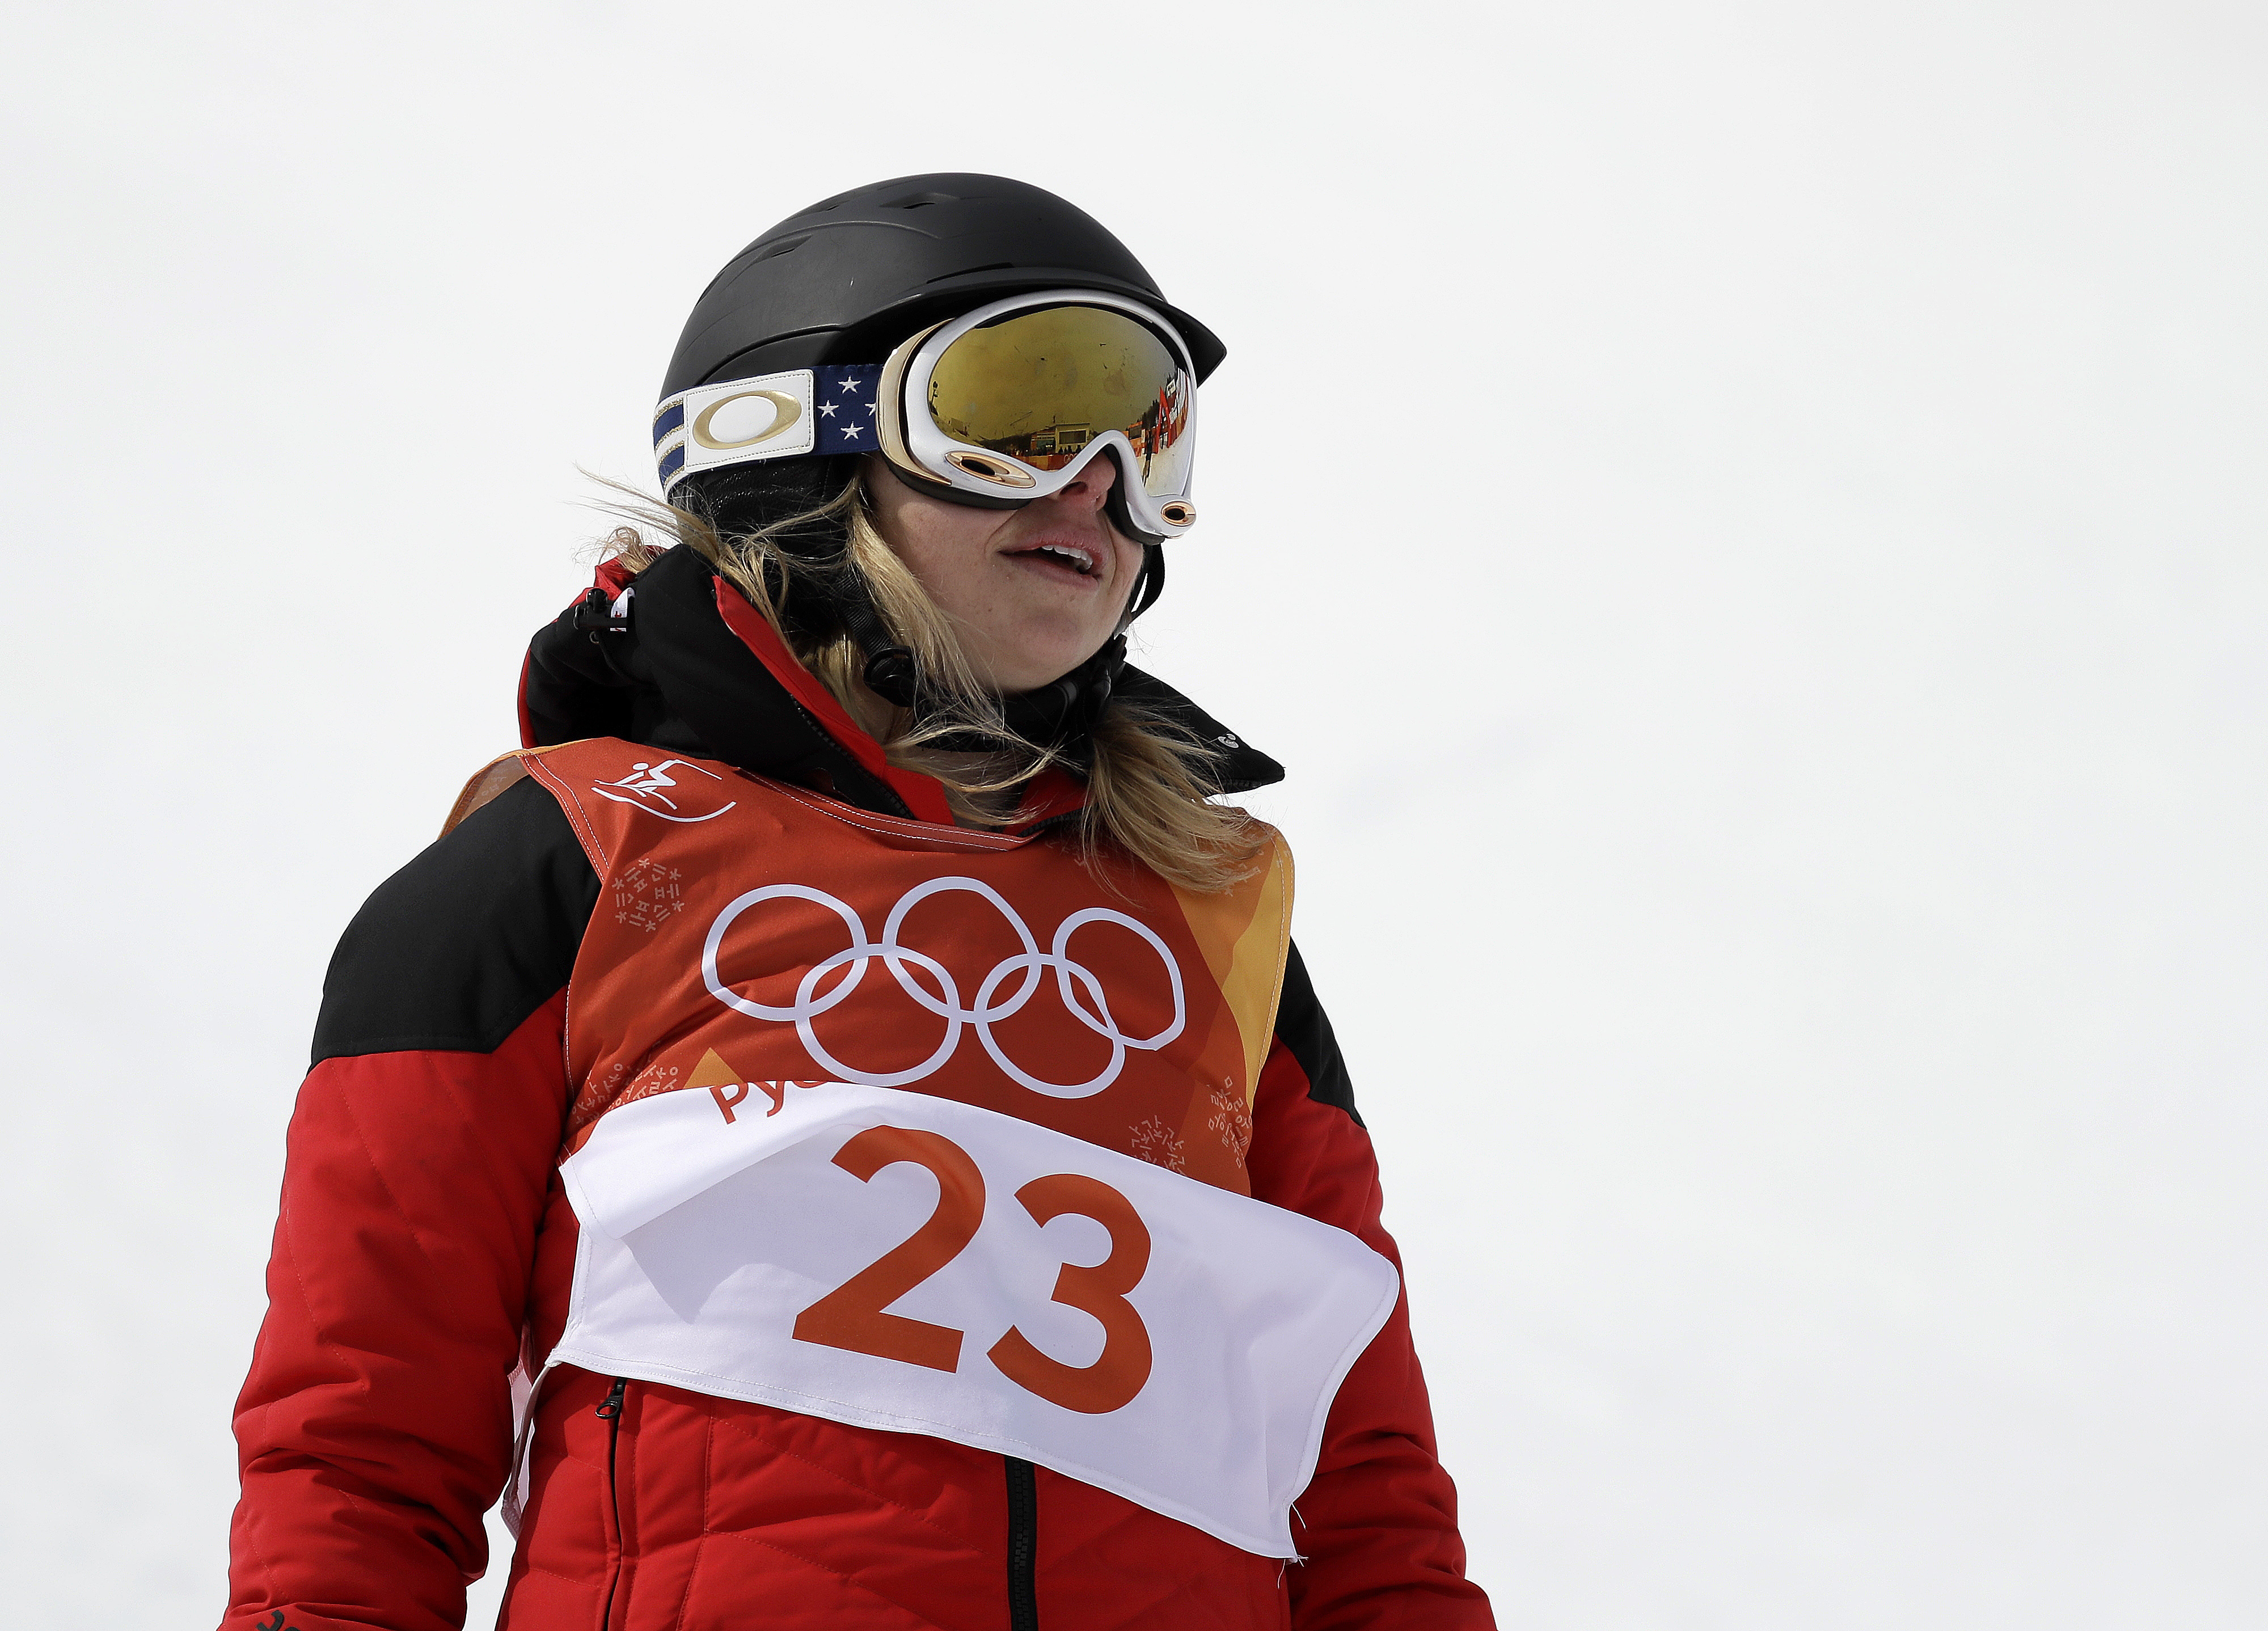 Elizabeth Swaney Winter Olympics 2